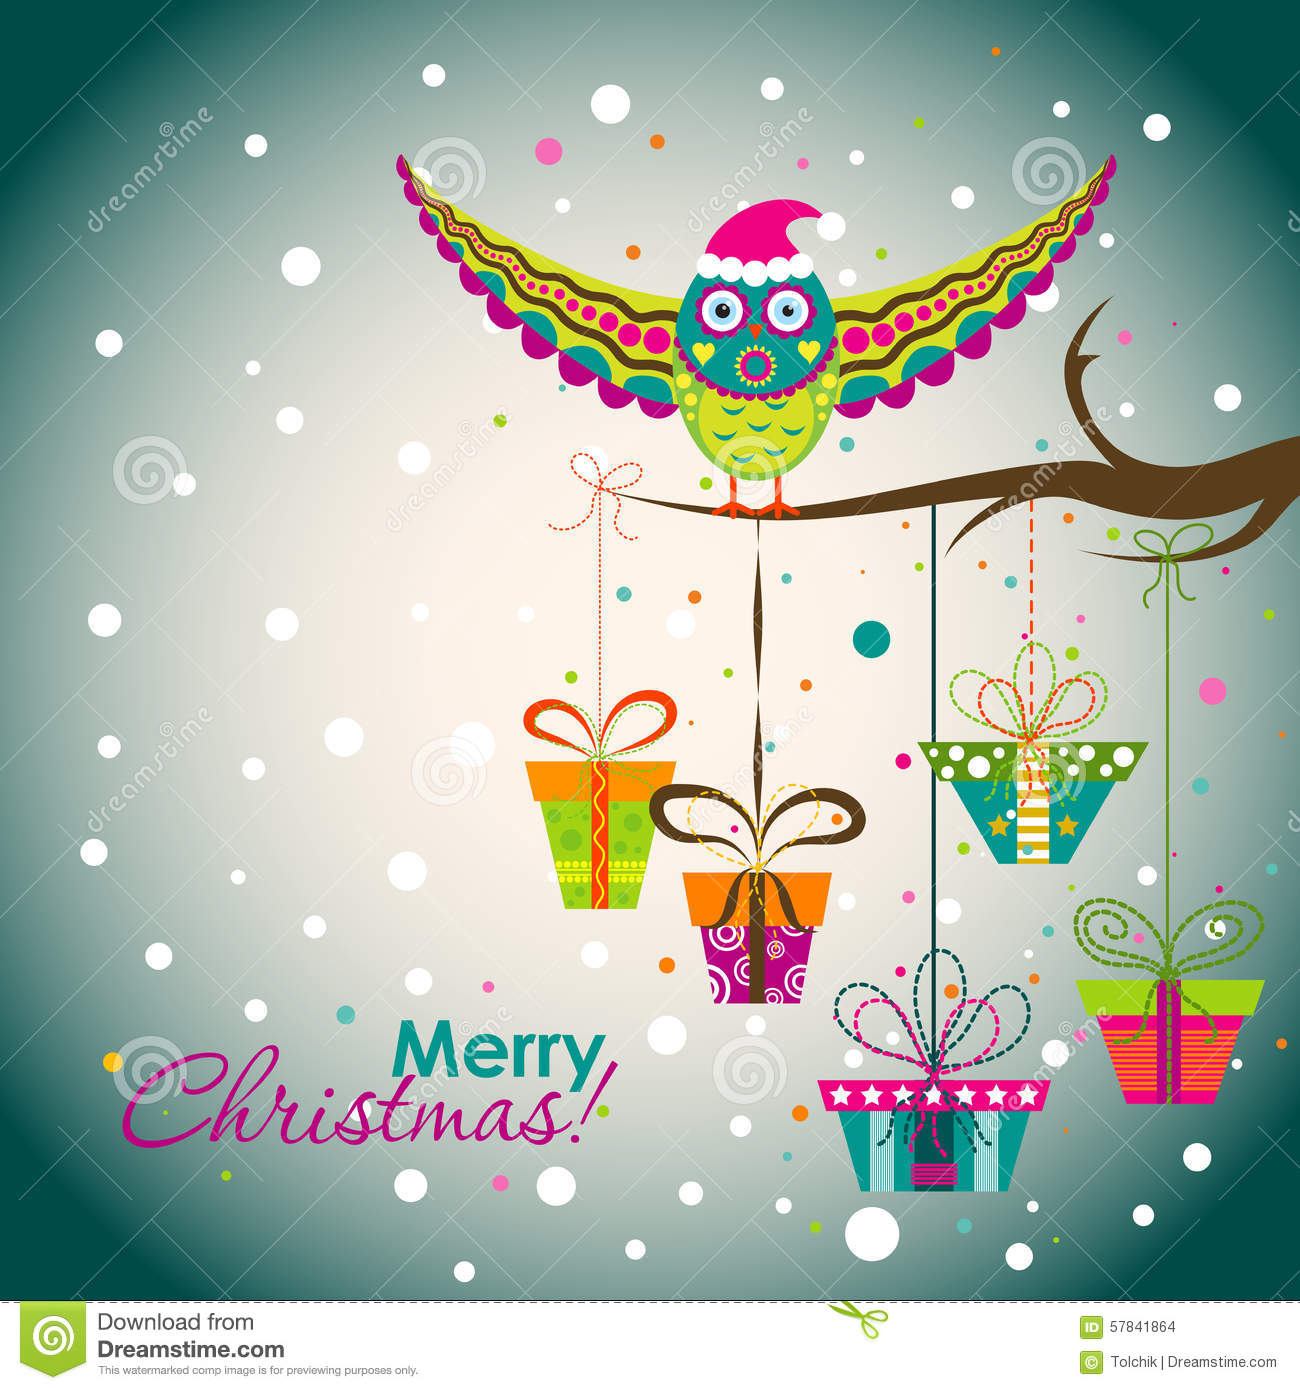 Template Christmas Greeting Card, Vector Stock Vector - Image ...